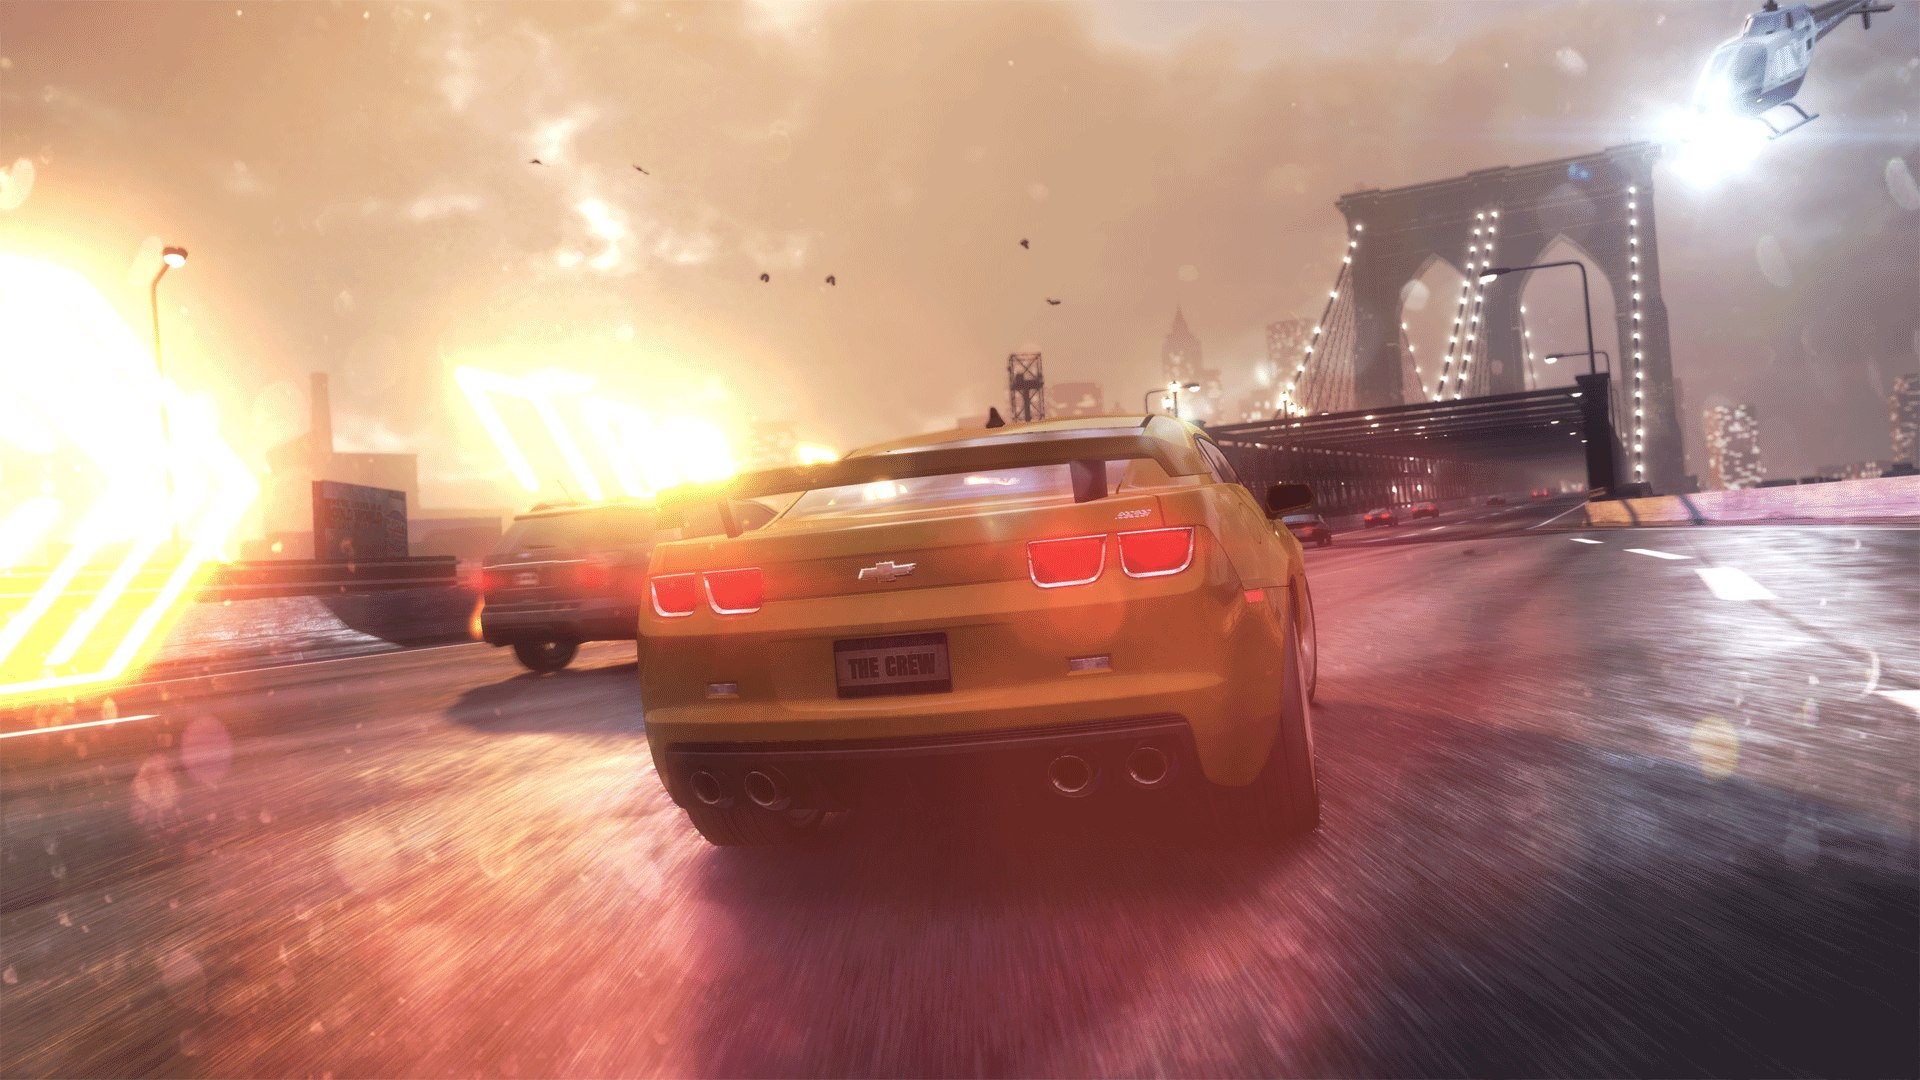 The Crew: a racing game like no other